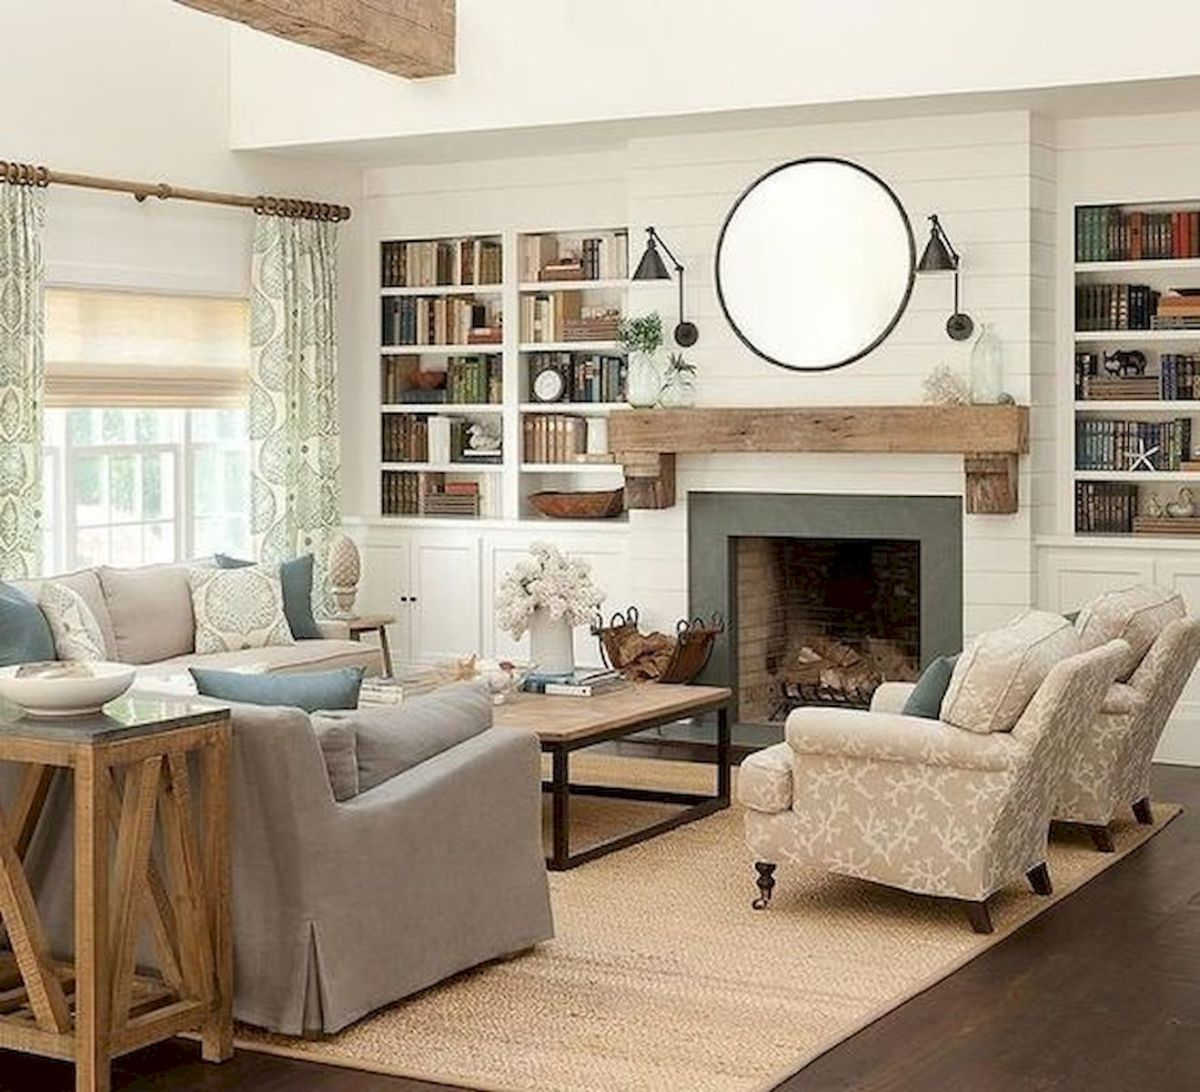 50 Best Modern Farmhouse Decor Ideas For Living Room (41)